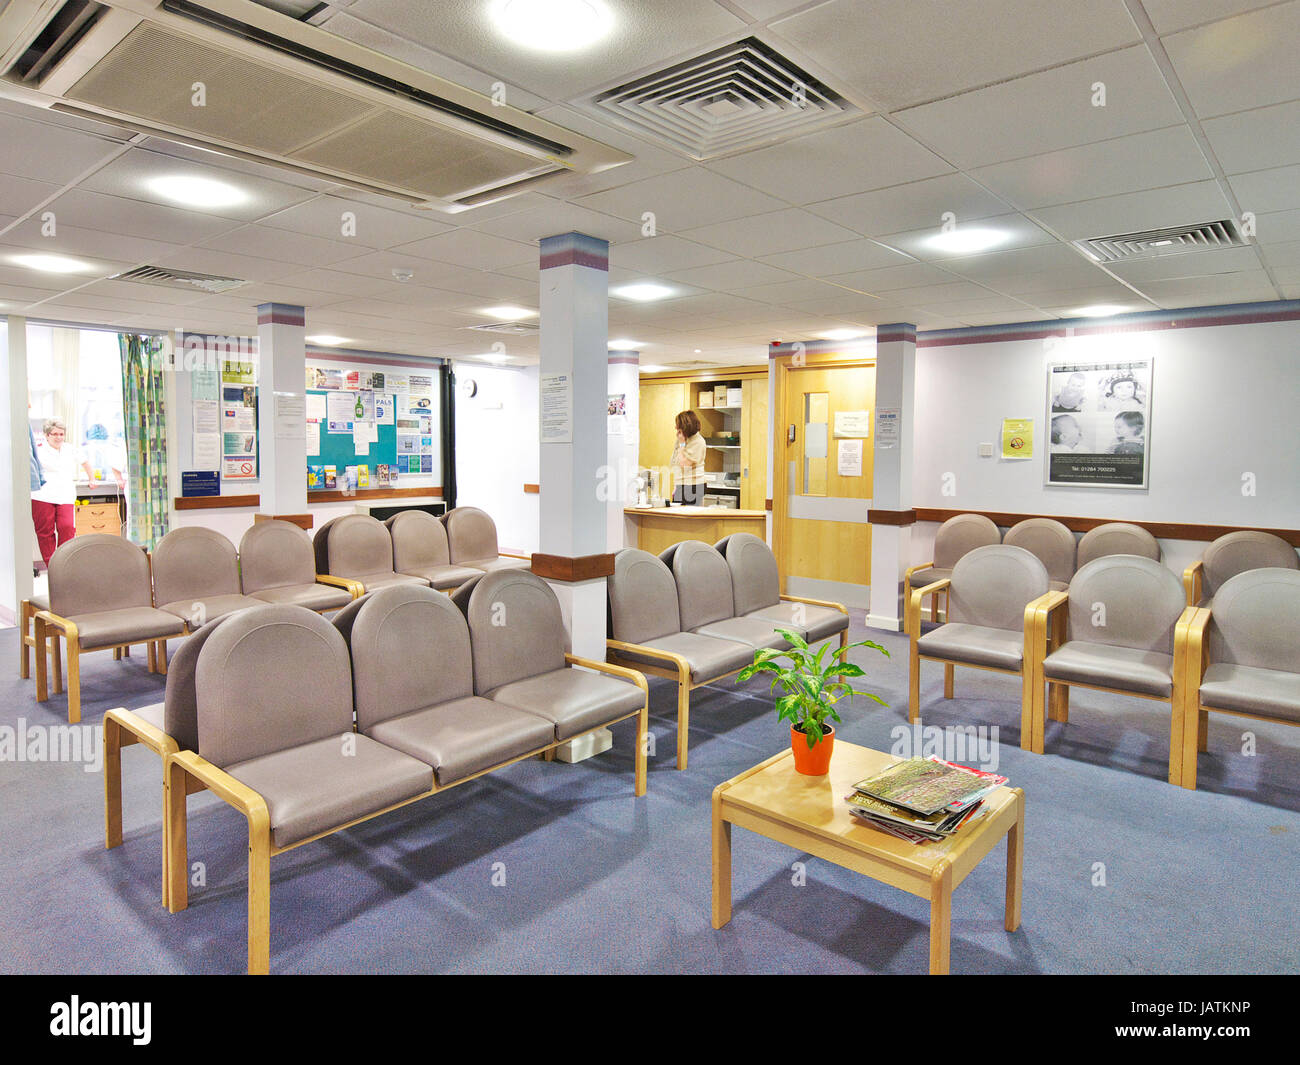 Empty waiting room in large NHS hospital.  A quiet space without any patients - Stock Image